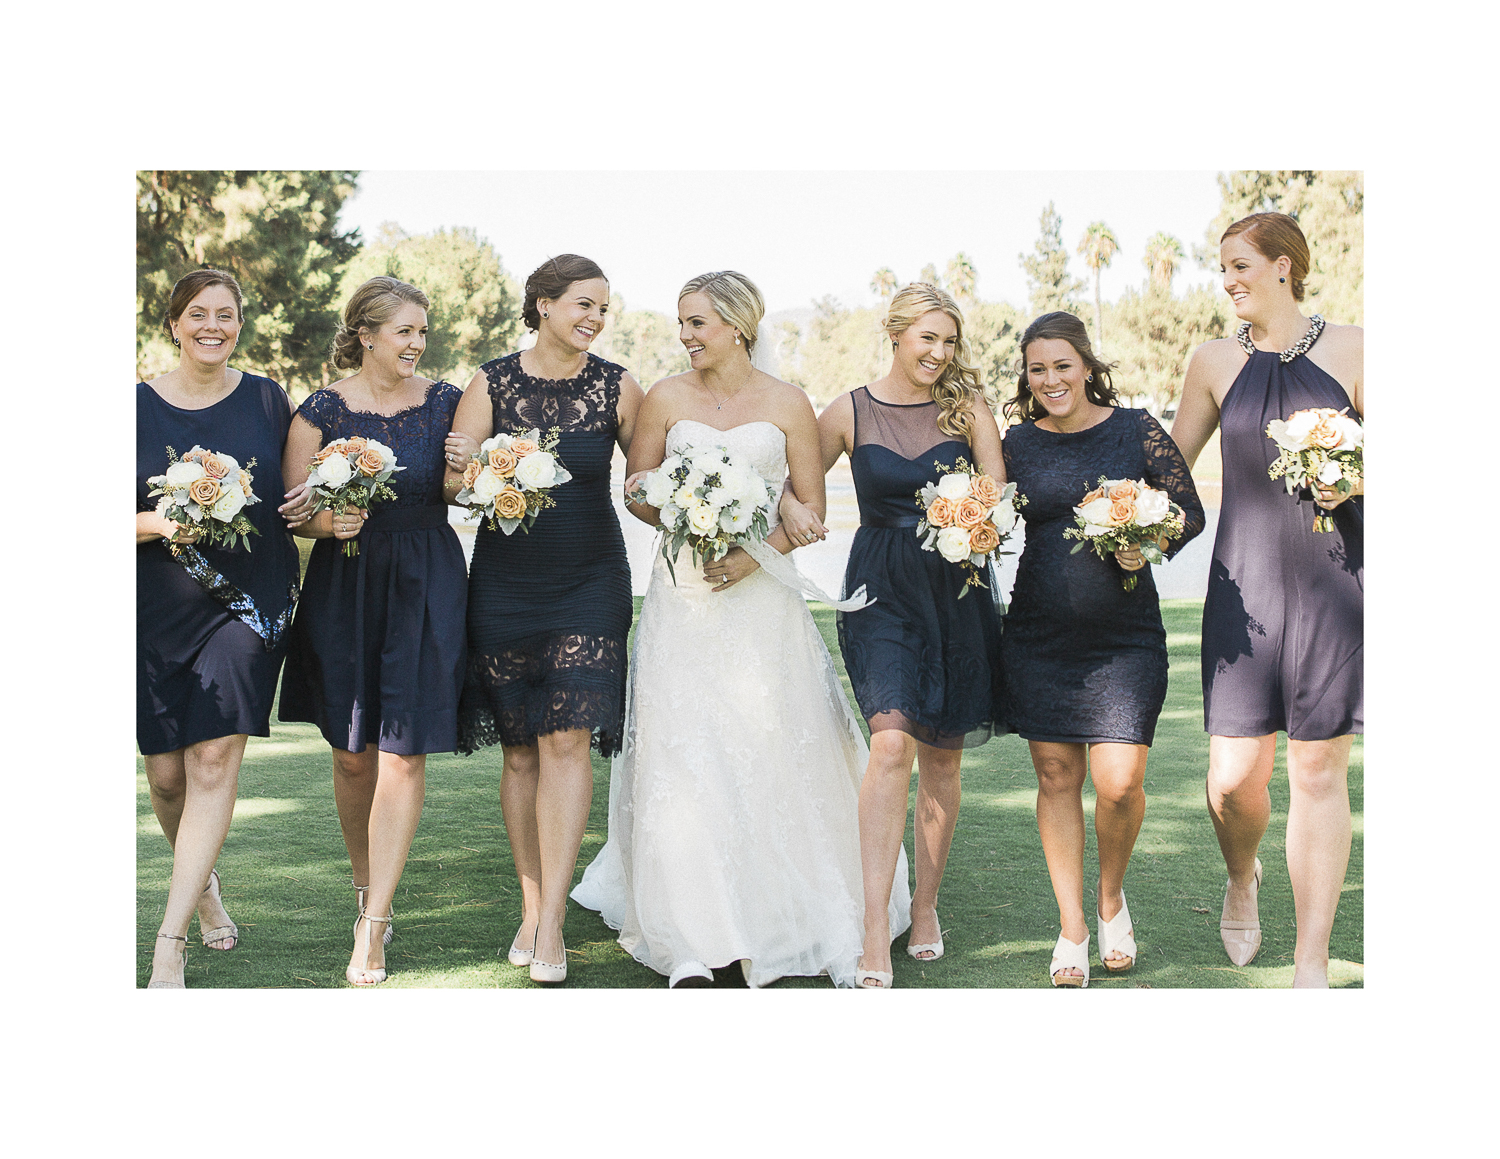 The bridesmaids wore navy mismatched dresses.